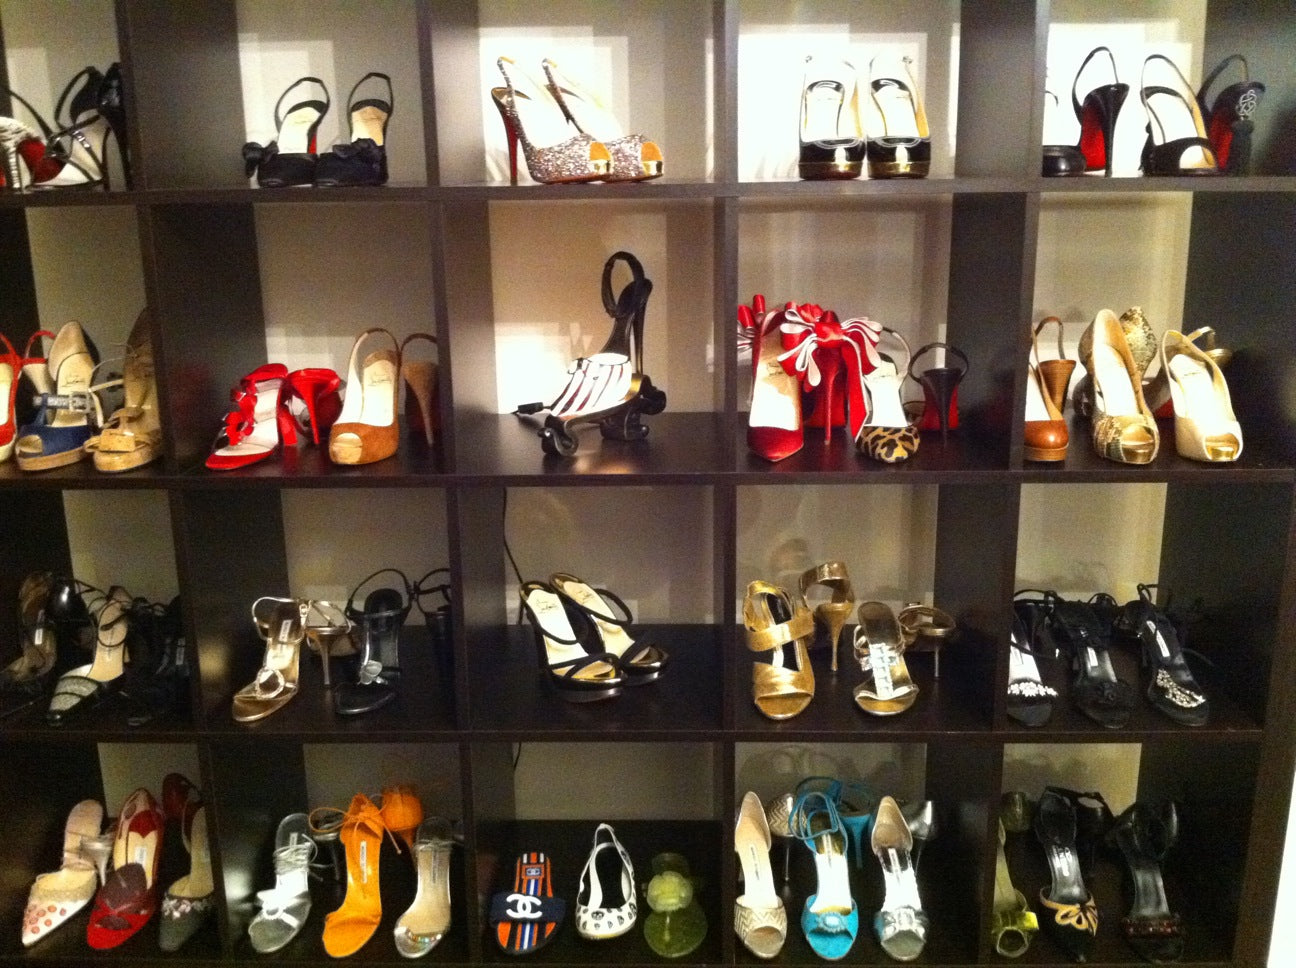 cbbe97da3 Make your outfit pop with some fabulous shoes from The Thrifty Shoe Shop.